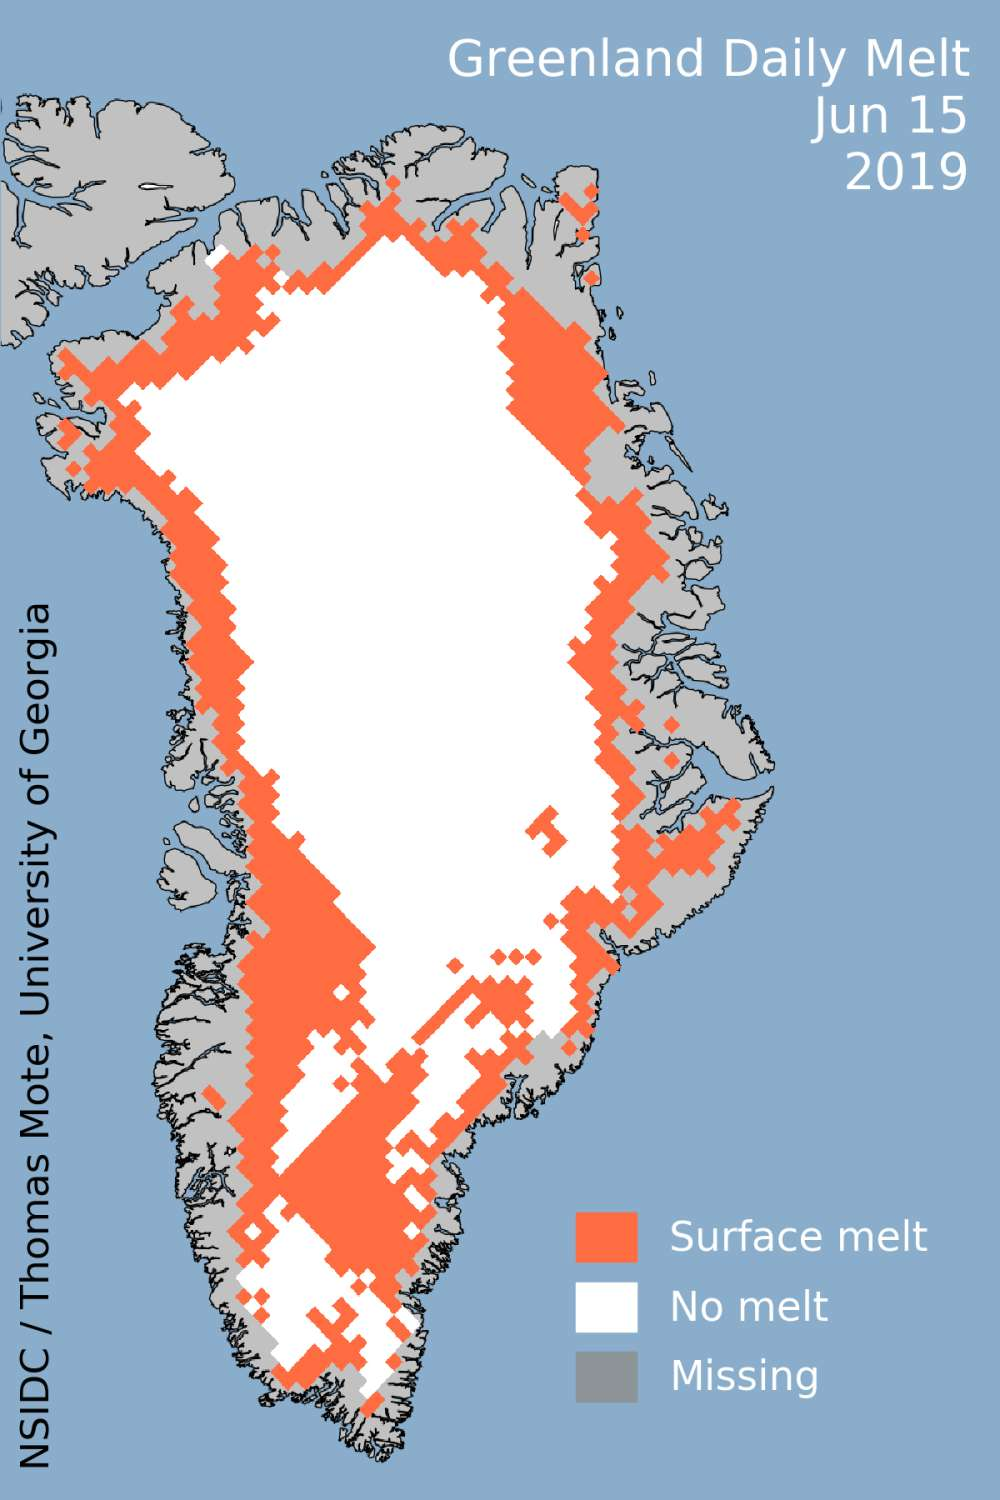 content-1560764948-greenland-daily-melt